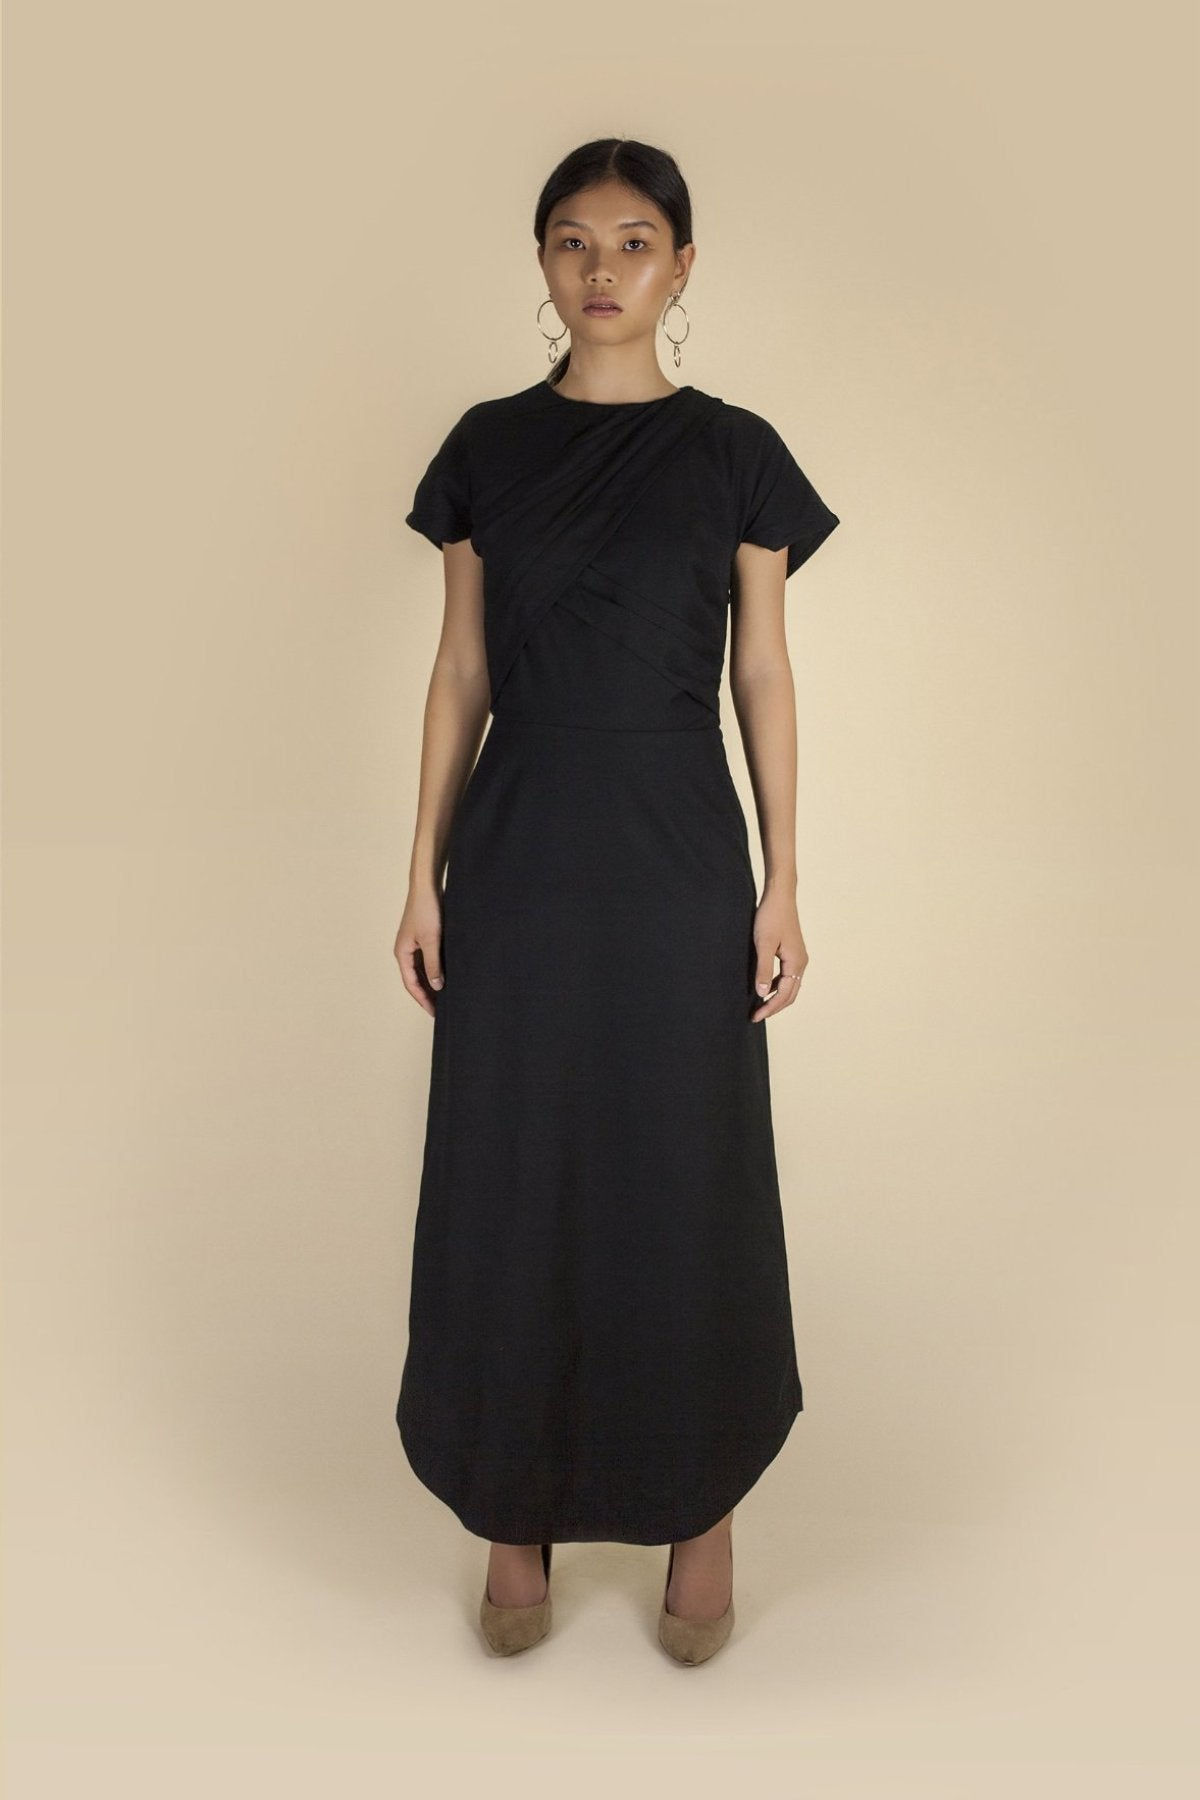 Coev Dress Dresses The Fashion Advocate ethical Australian fashion designer boutique Melbourne sustainable clothes